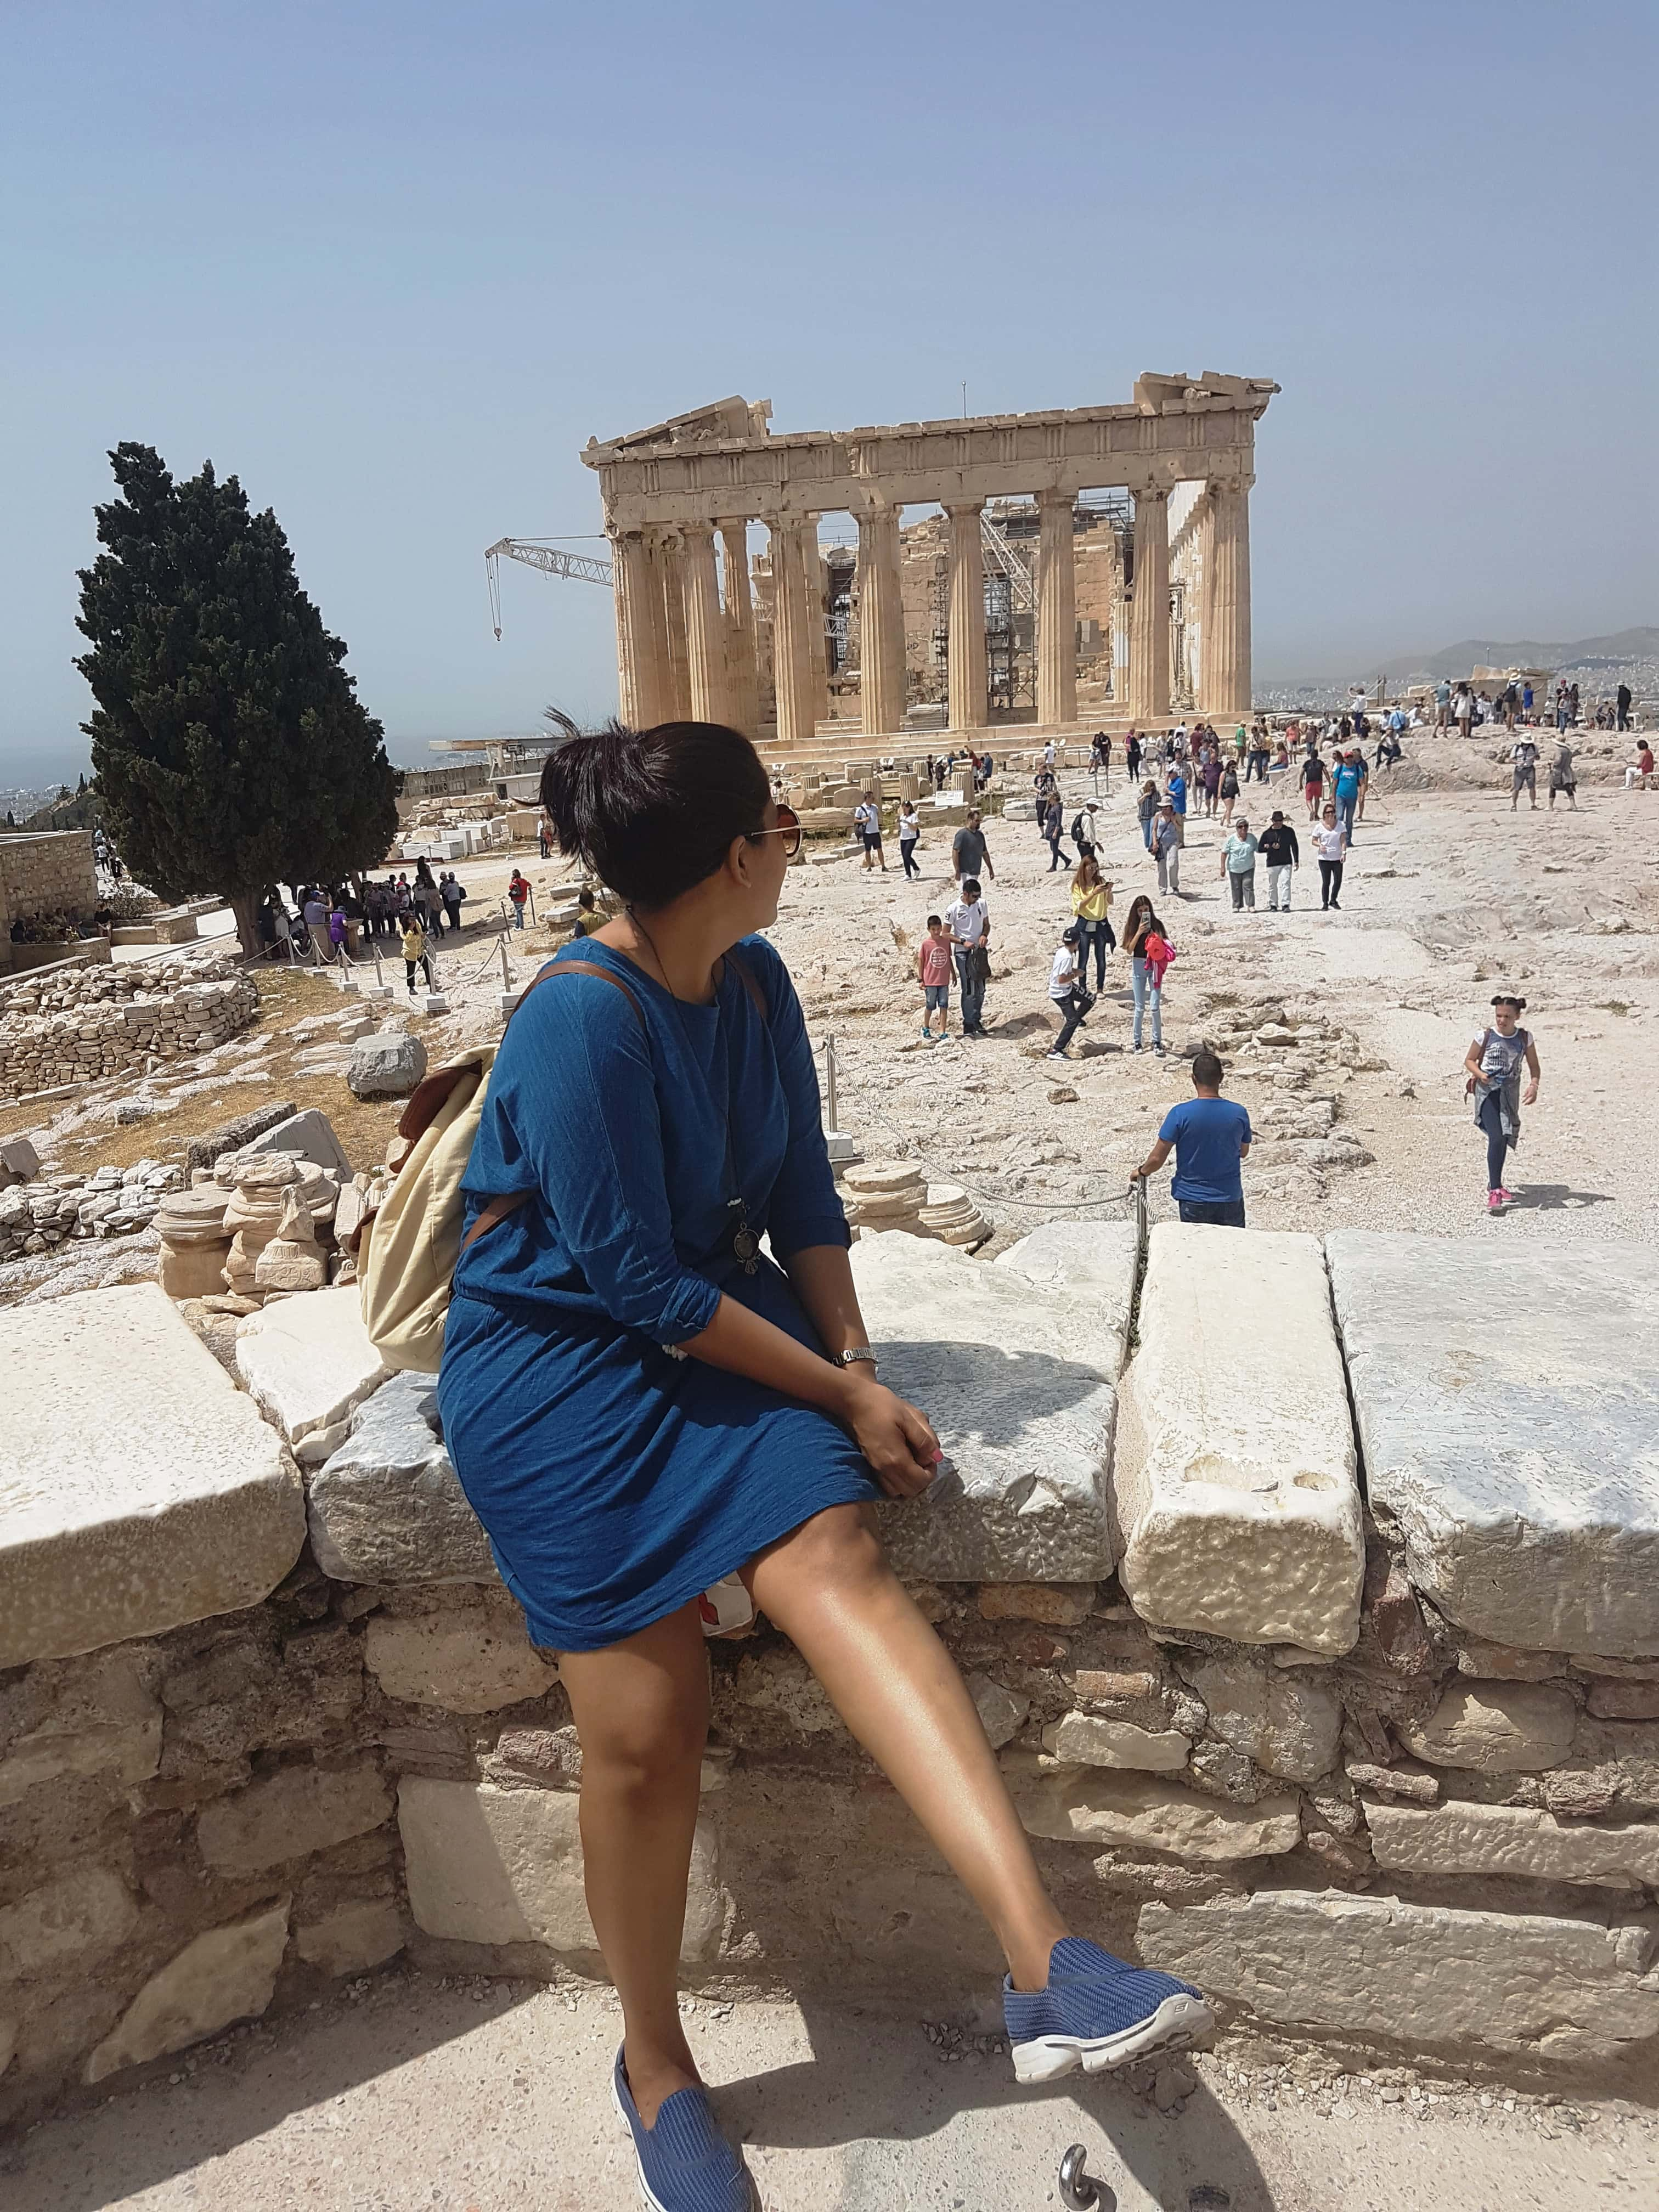 Athens, from the corner table, #fromthecornertable